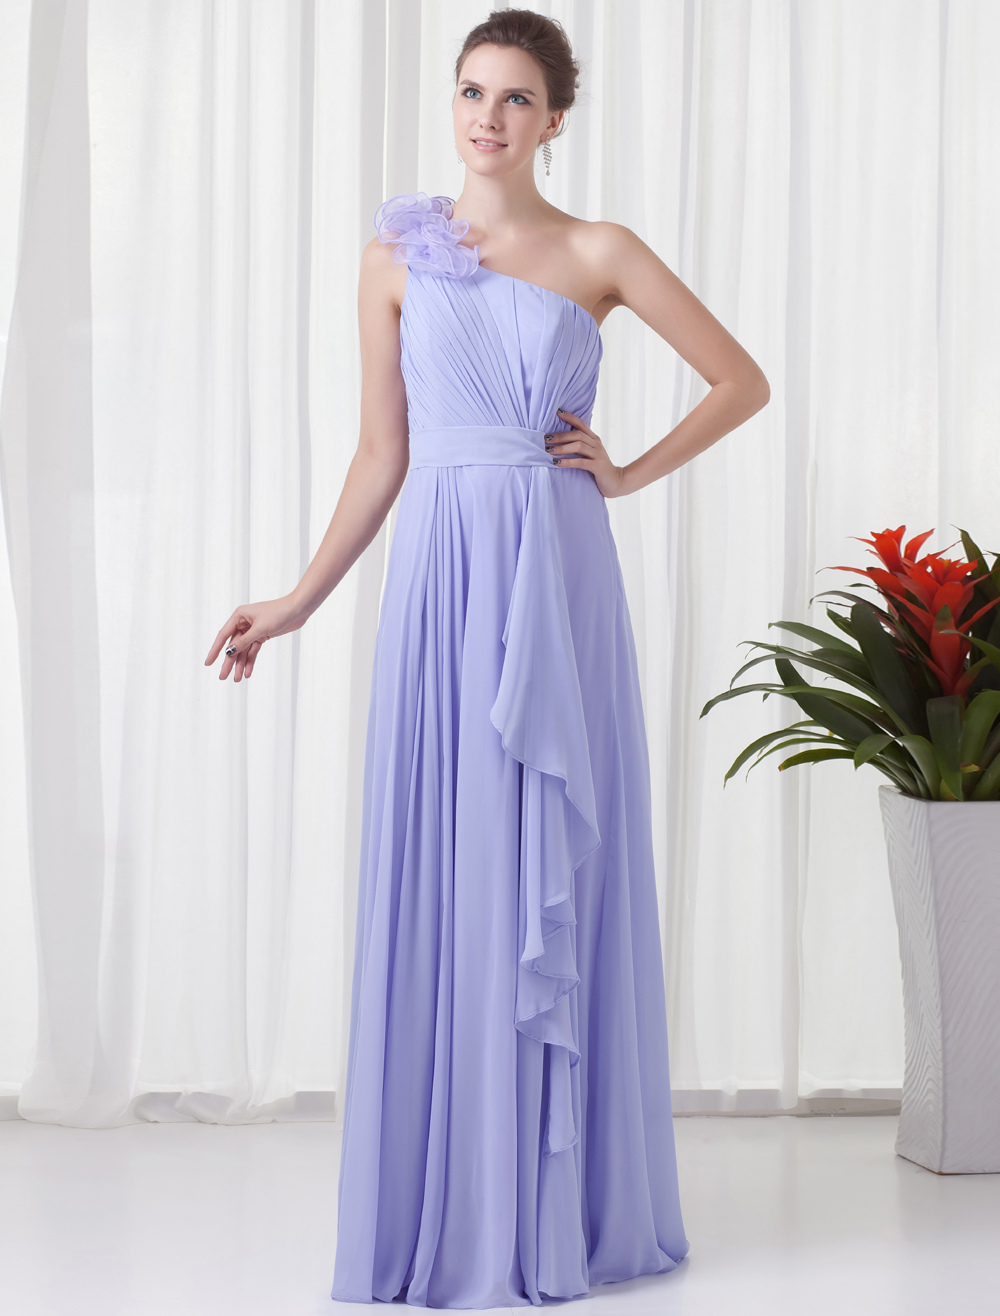 Chiffon Bridesmaid Dress Violet One Shoulder Prom Dress Cascading Ruffle Pleated Floor Length Party Dress